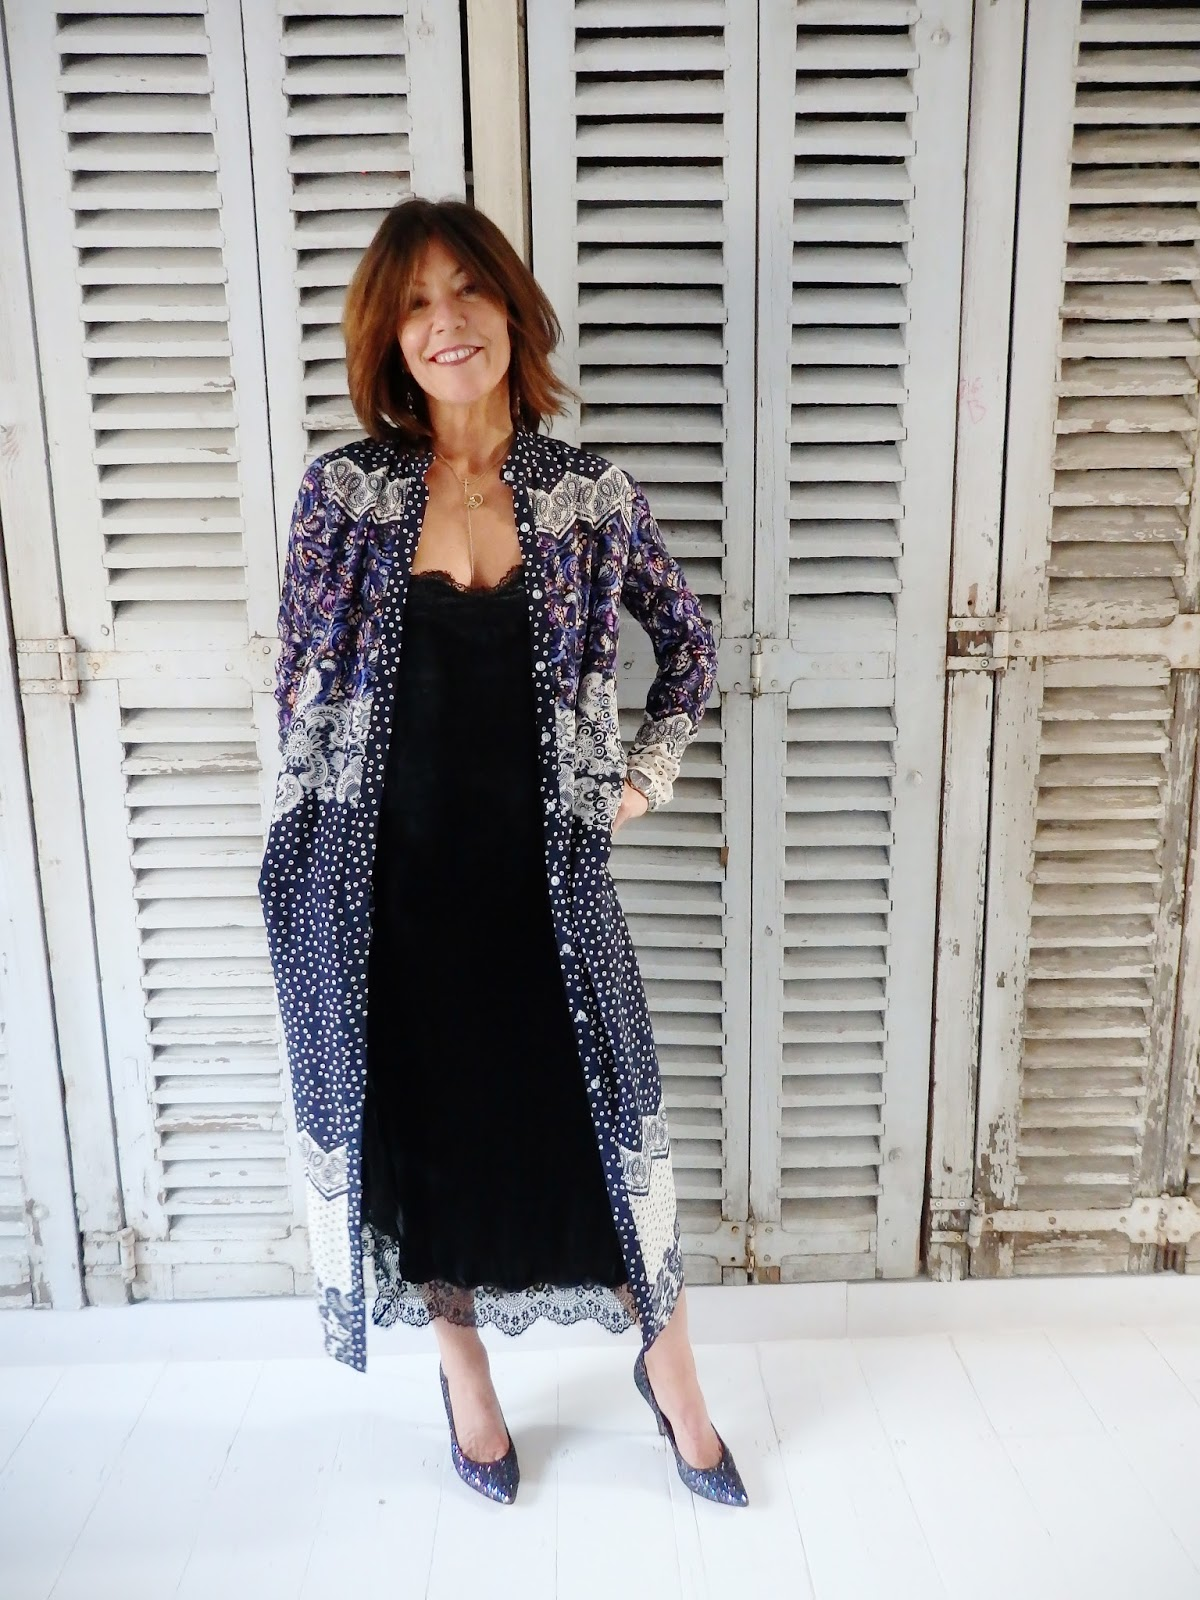 Dress up xmas party - Next We Re Off To Our Friends Fantastic Christmas Party At Their Gorgeous Home In Belgravia I Ve Got This Dress From Saloni It S New In And I Bought It To